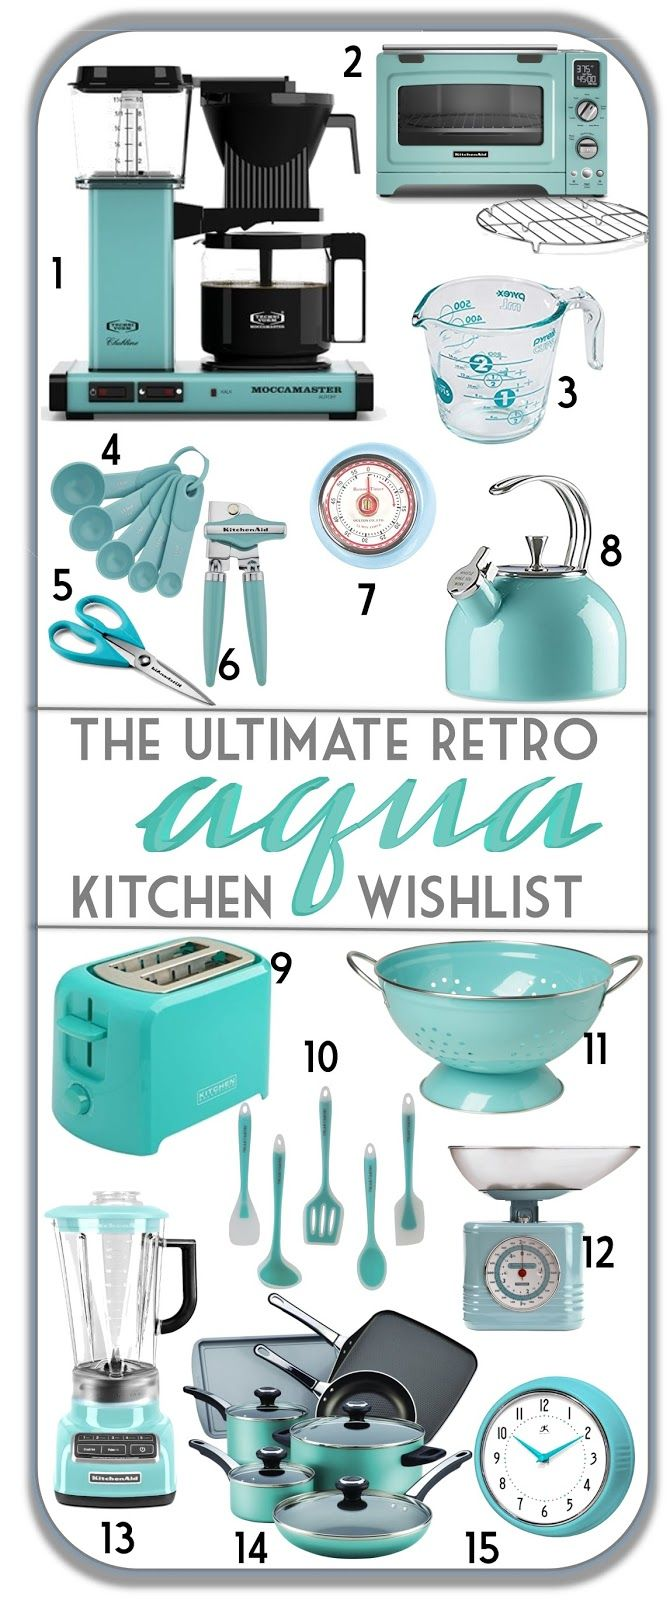 The Ultimate Retro Aqua Kitchen Wishlist is part of Aqua kitchen, Retro kitchen, Teal kitchen, Vintage home decor, Robins egg blue kitchen, Retro home decor - The ultimate guide to a pretty aqua or turquoise retro kitchen! Kitchenaid Aqua Sky, aqua kitchen, vintage kitchen, retro kitchen, turquoise kitchen, teal kitchen, mid century kitchen, mcm kitchen, robin egg blue kitchen